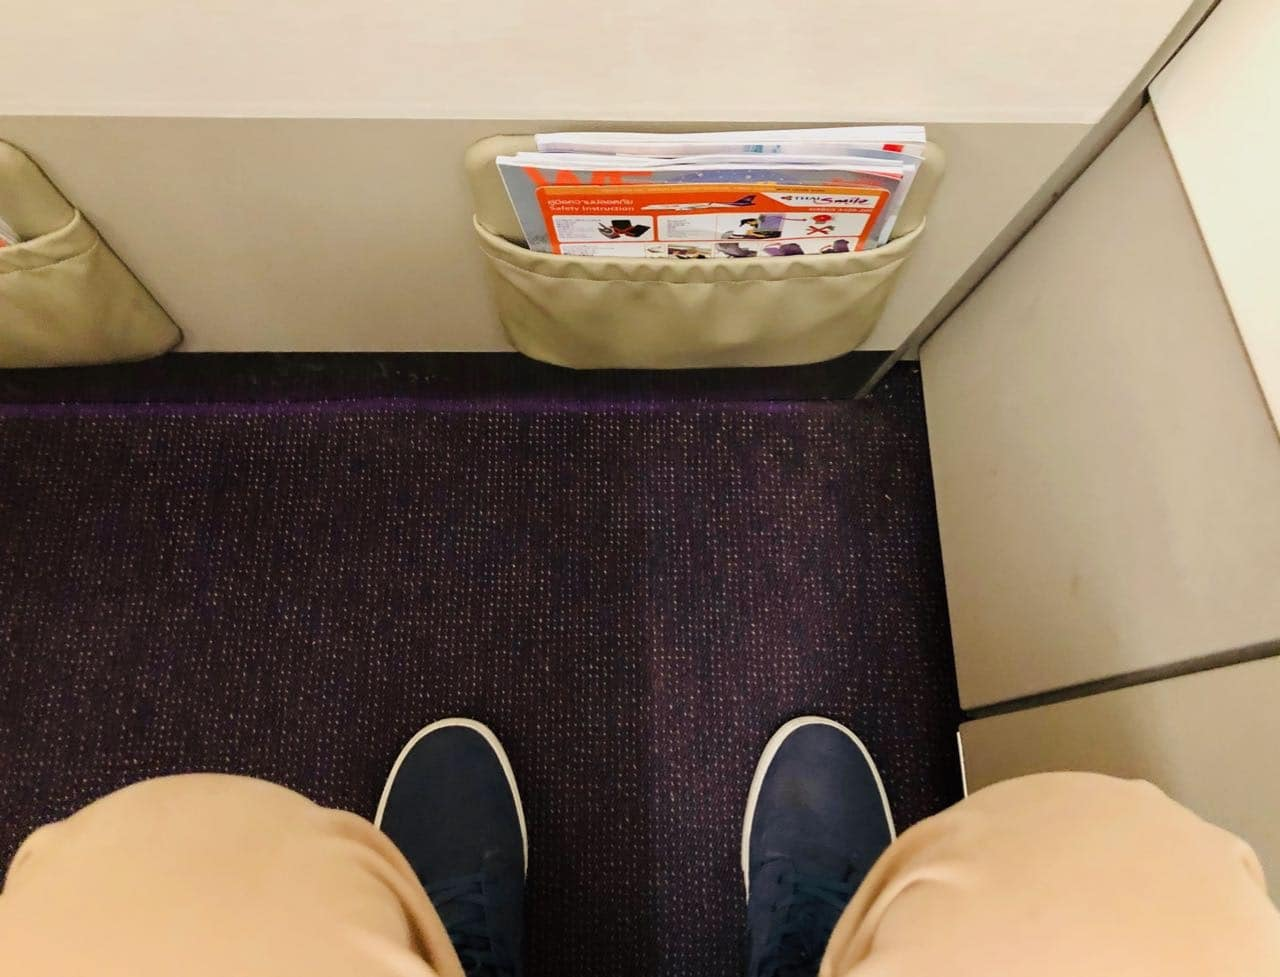 Review Thai Smile Airways Plus seat legroom